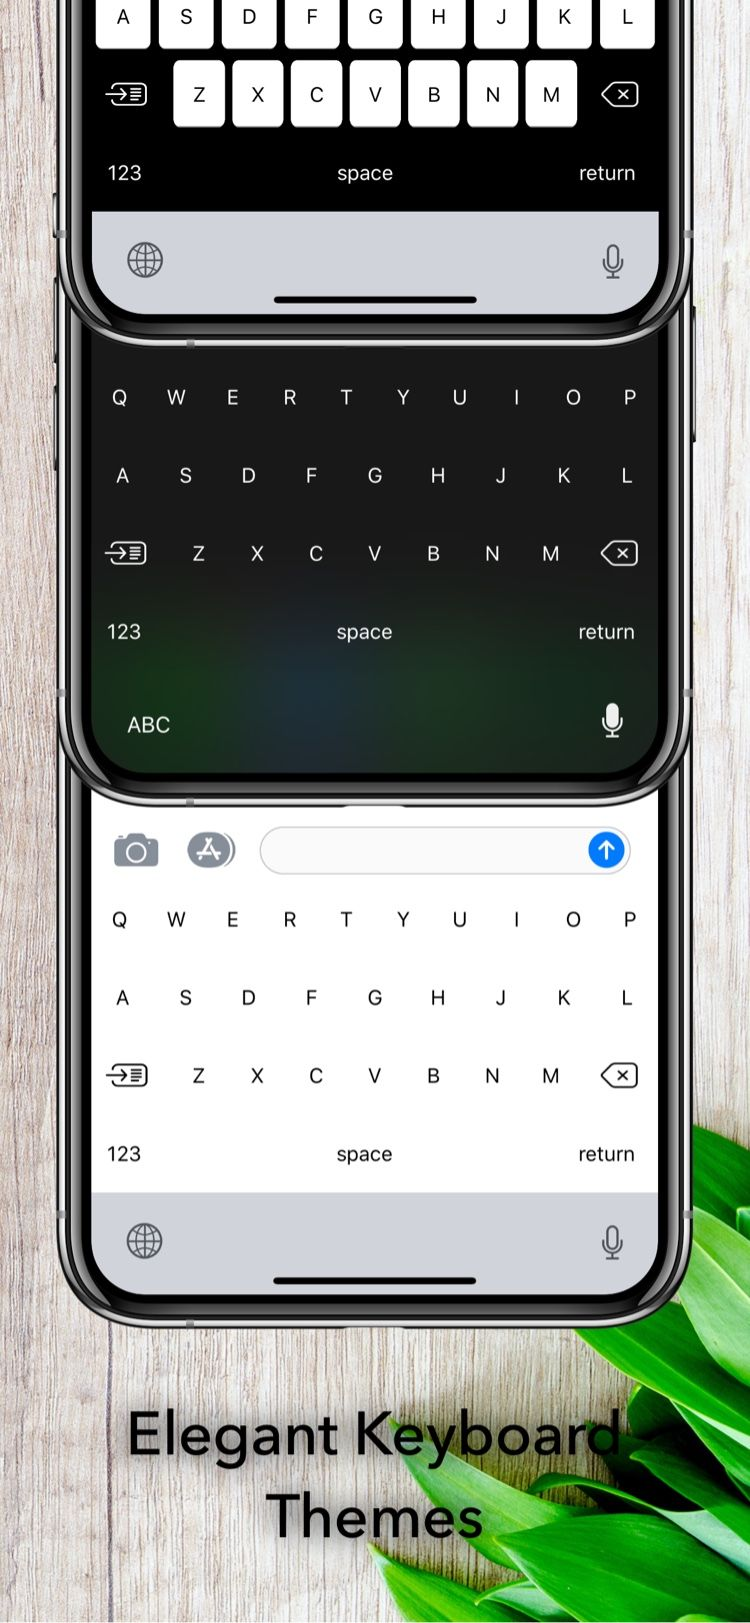 Custom iOS Keyboard Send Encrypted Messages | Cool Apps in 2019